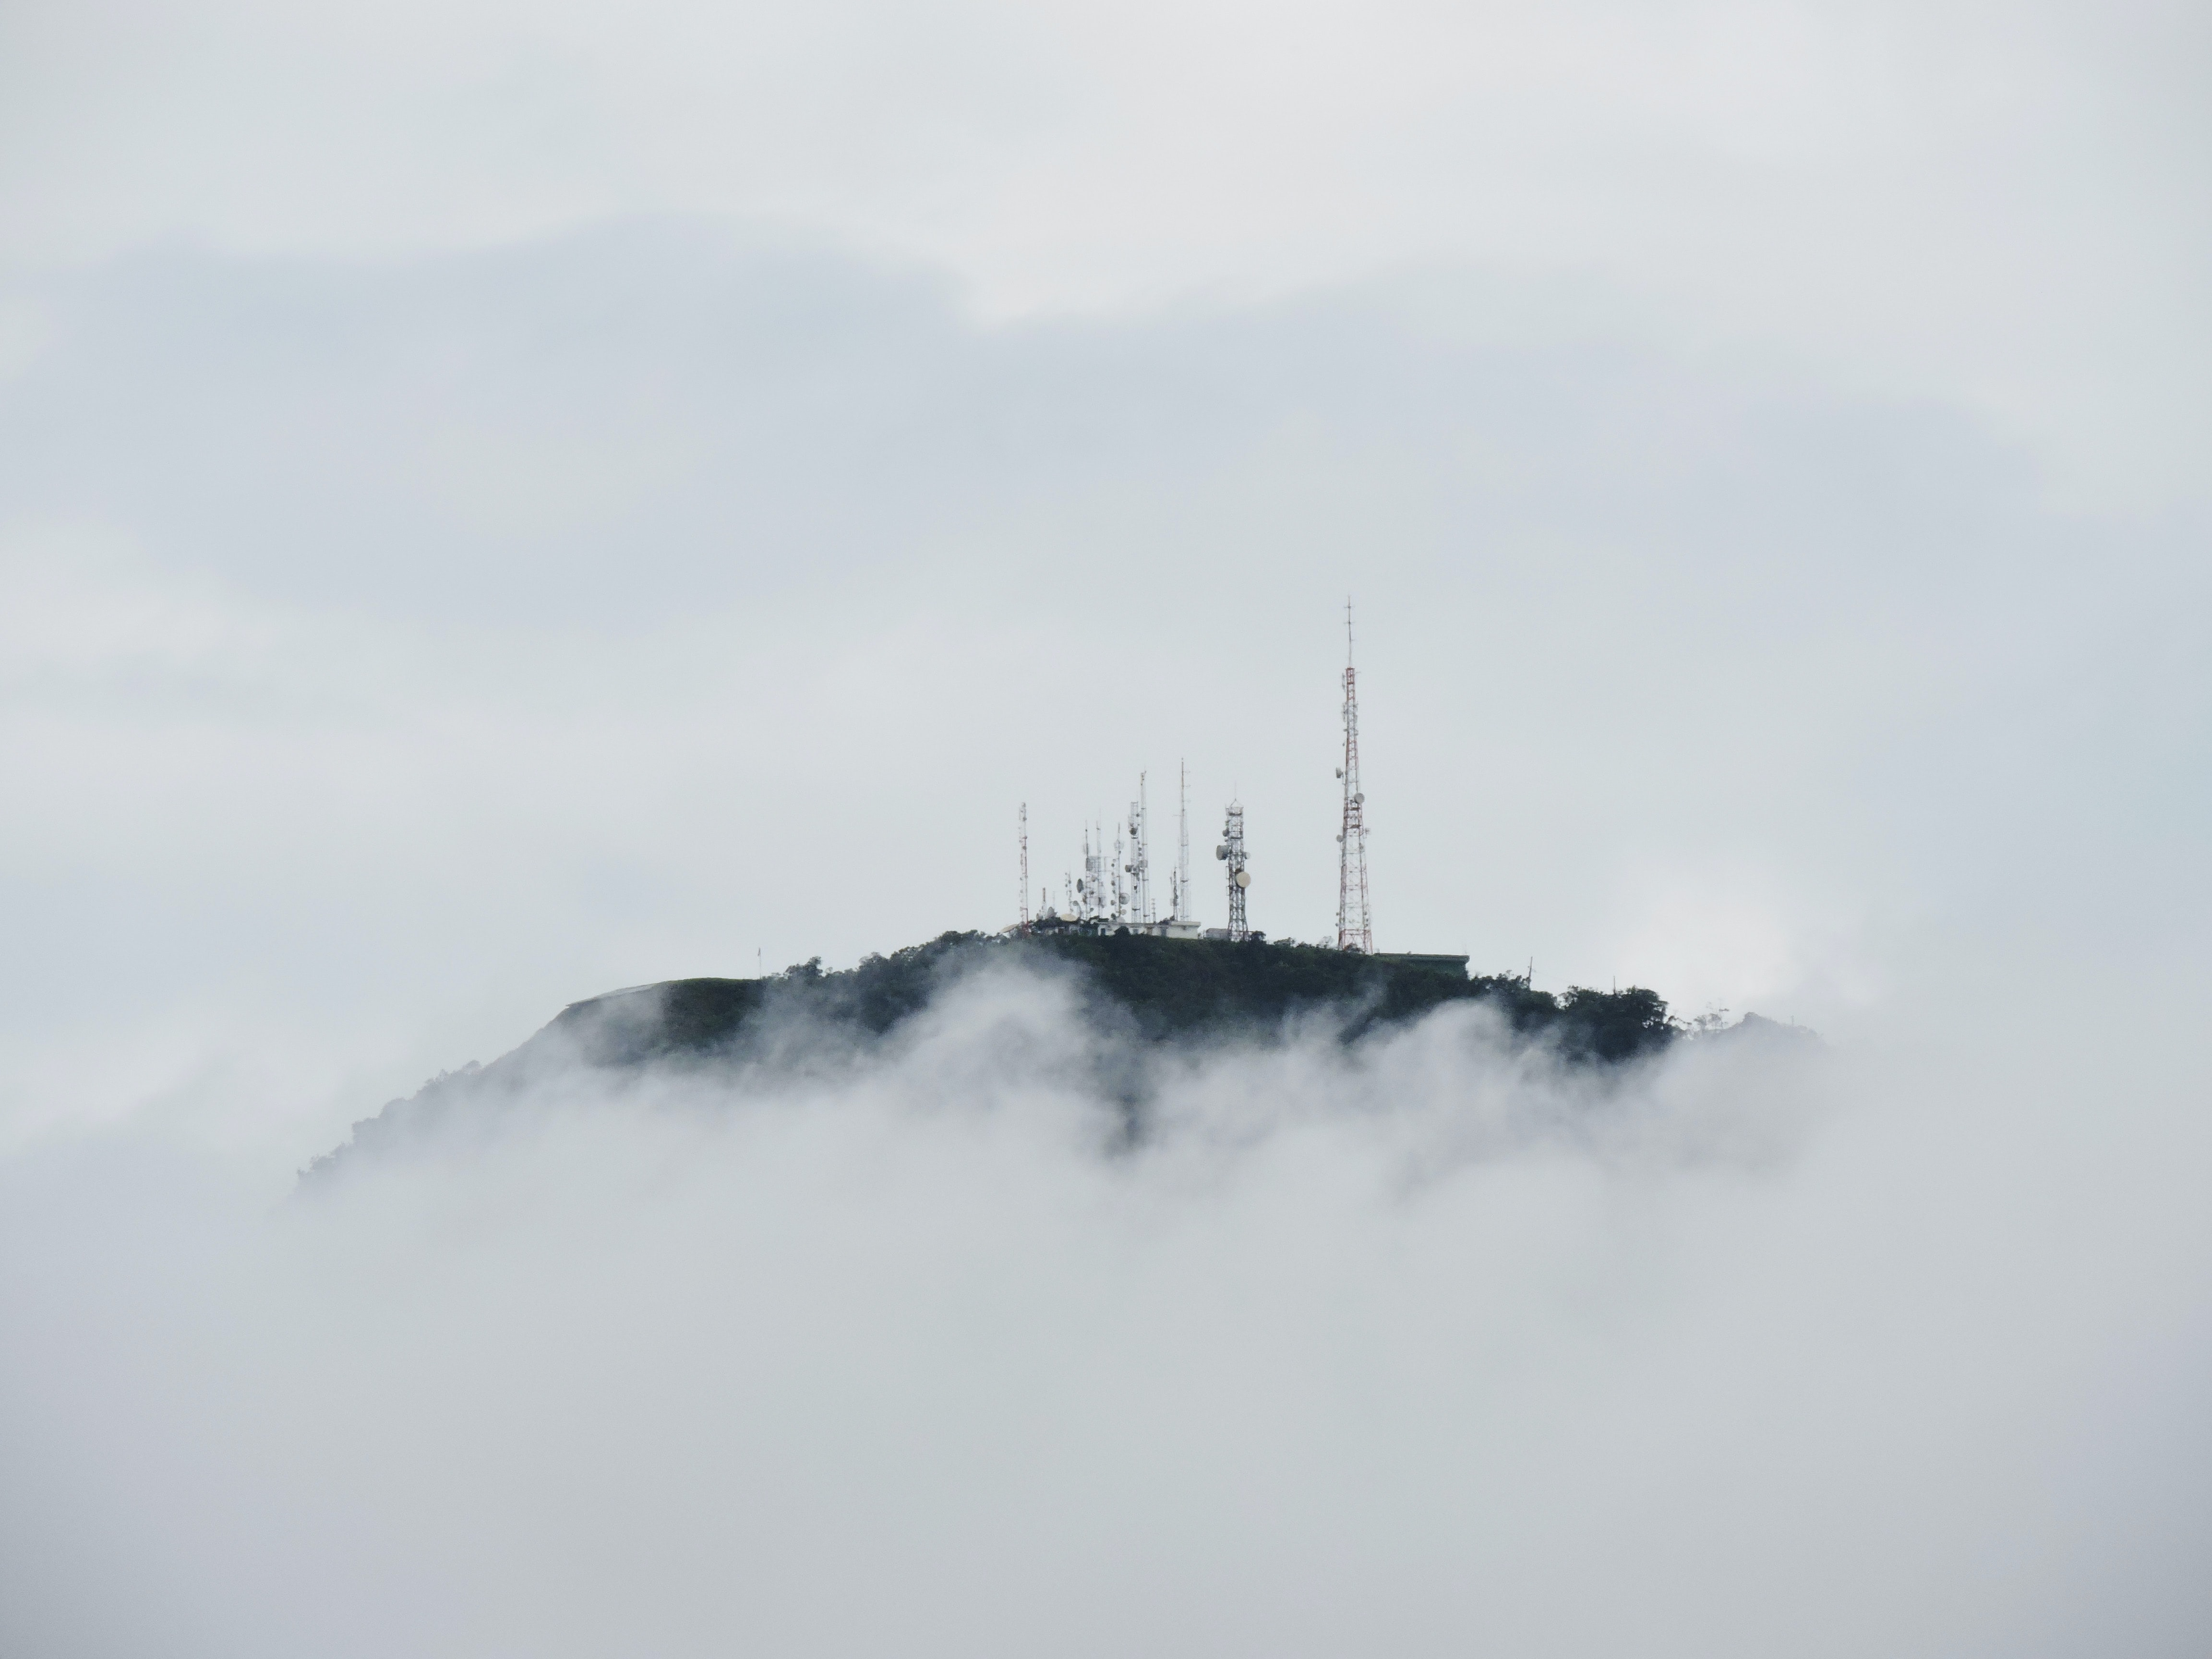 Radio towers on top of a cloud-shrouded mountain in Brazil